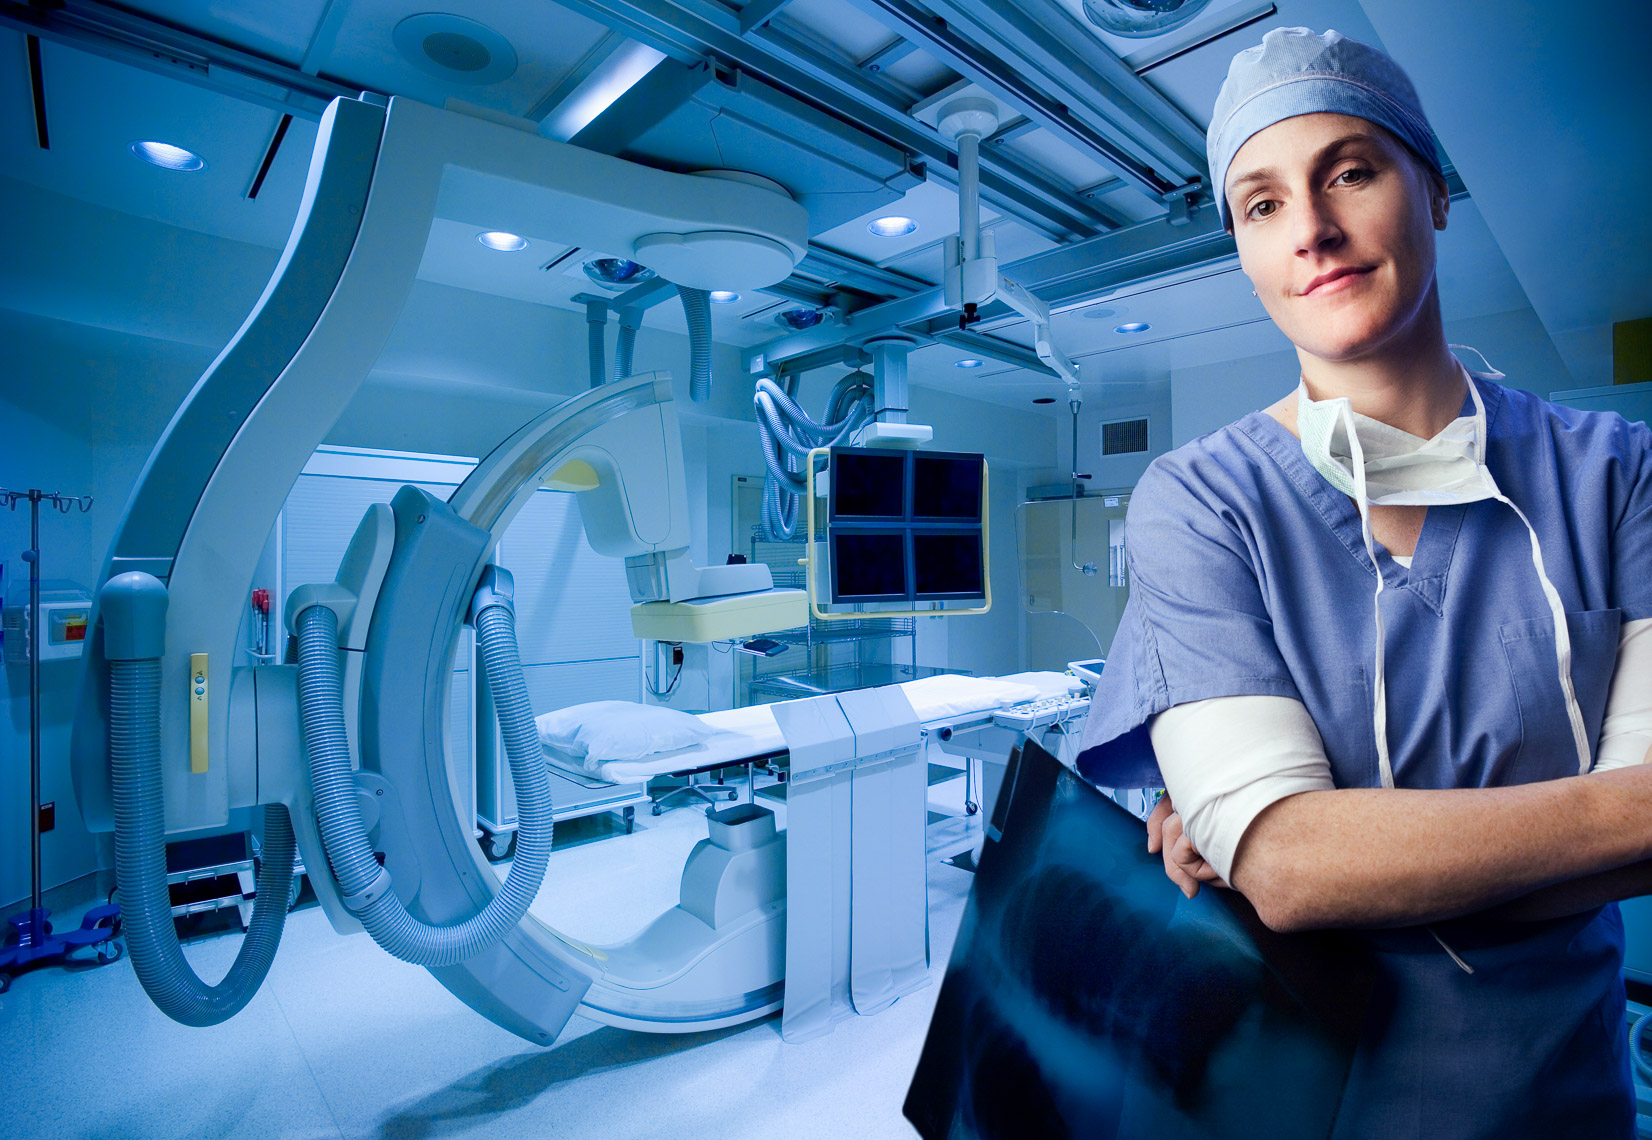 Radiologist portrait in an Interventional Radiology suite by healthcare photographer Robert Houser